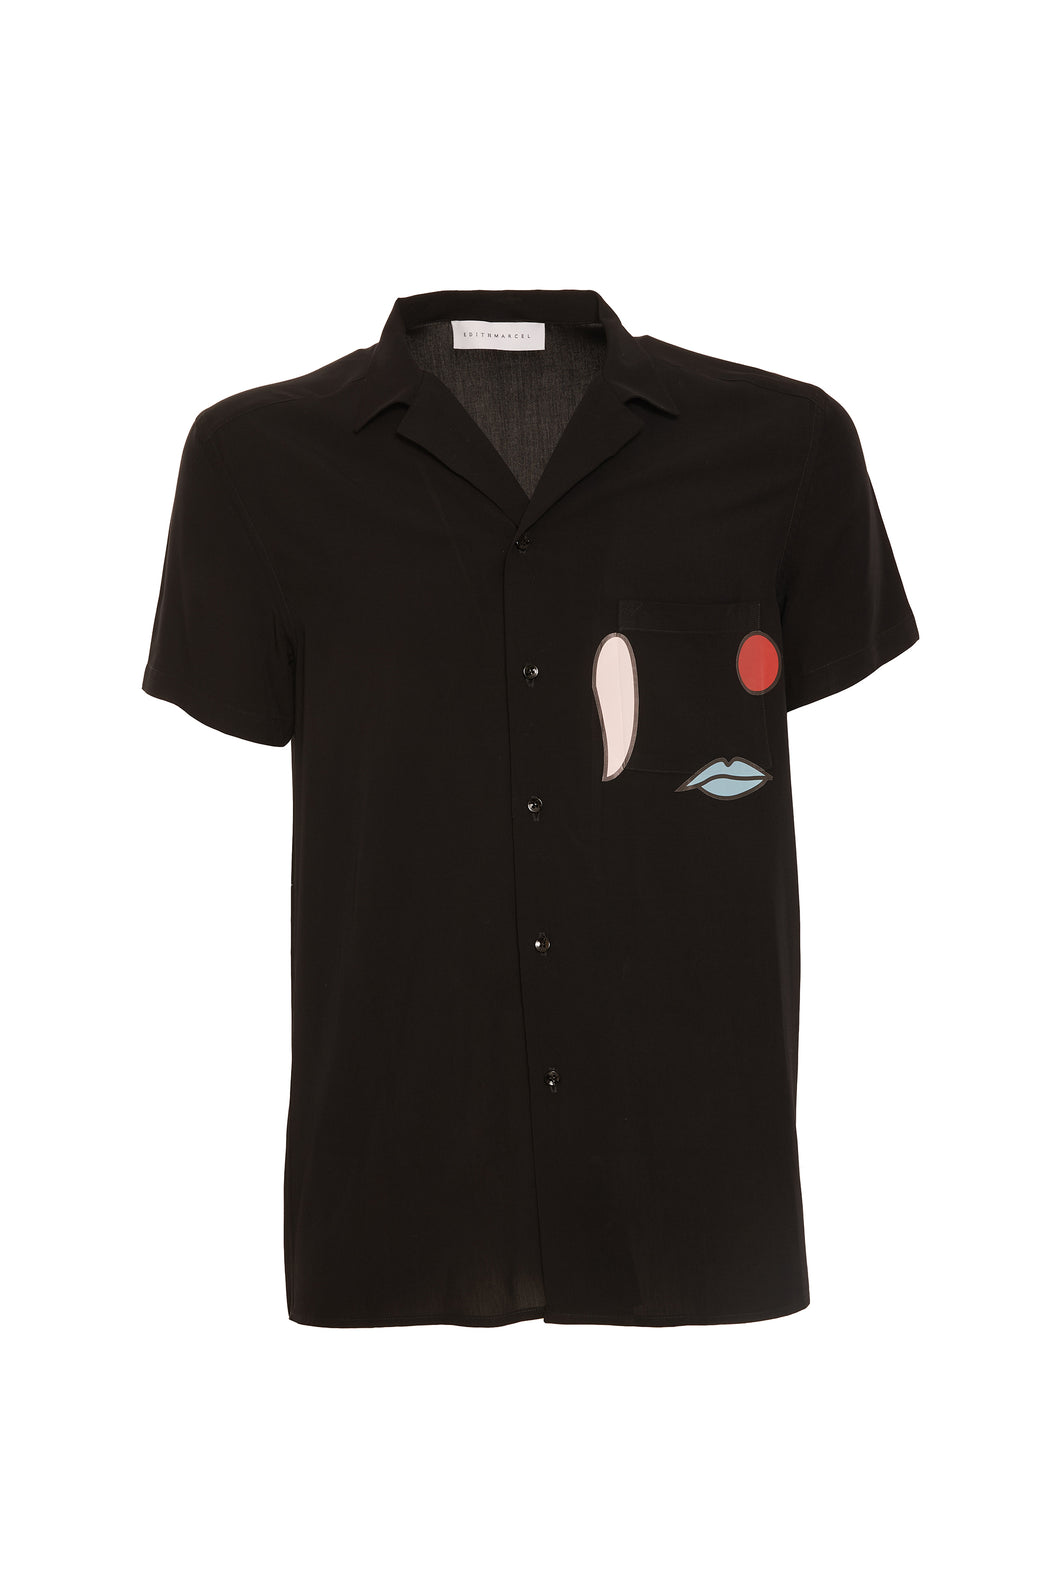 Viscose bowling shirt